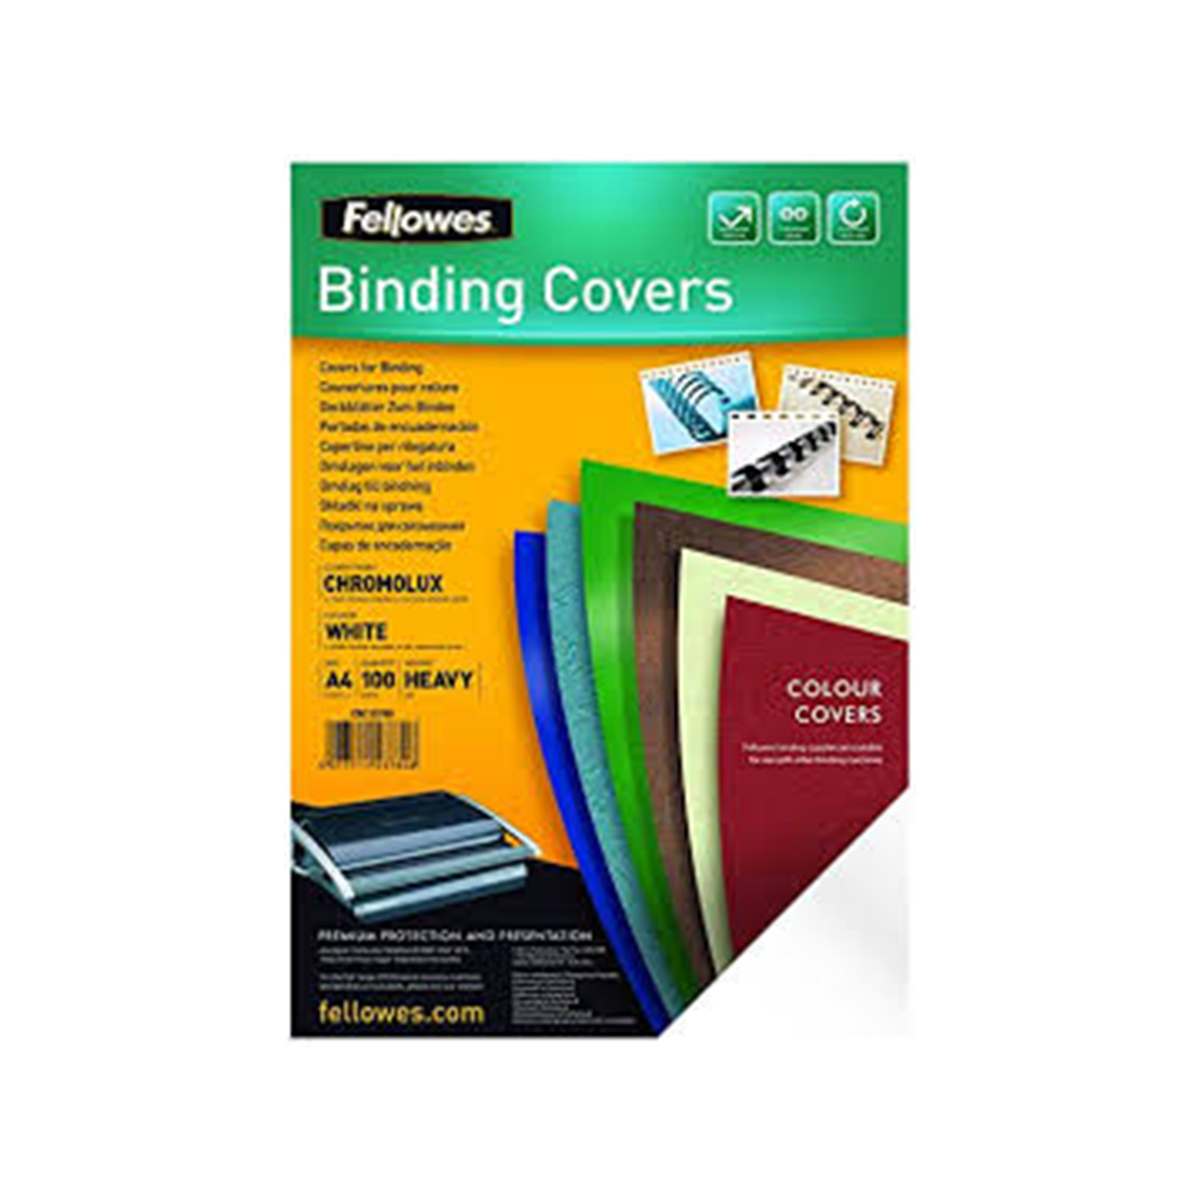 Fellowes 5378006 Binding Cover Chromolux Card with Leather Texture A4 Pack of 100 White